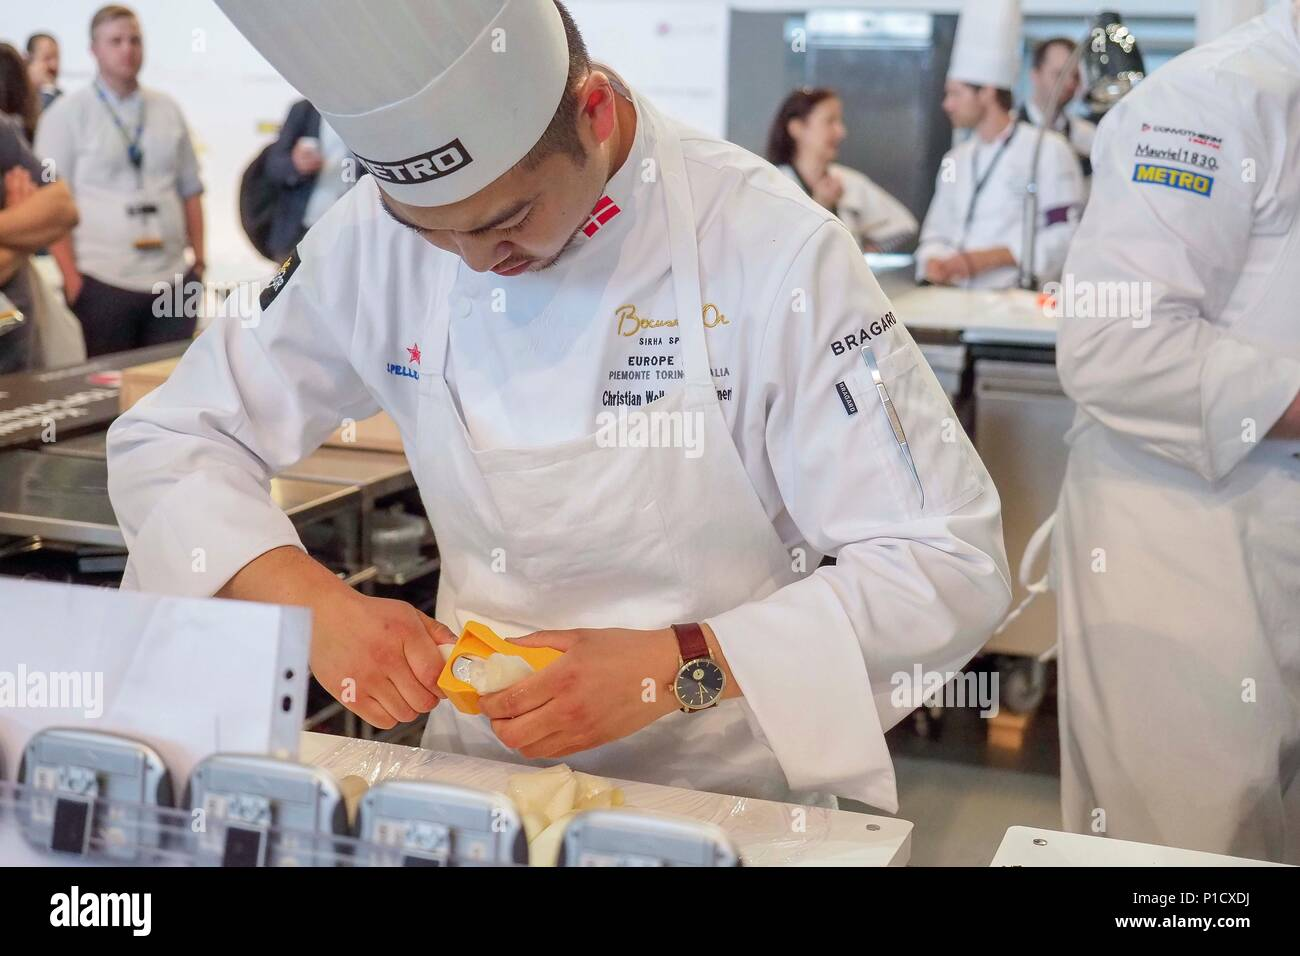 Turin, Italy. 12th June, 2018. Torino.Semifinali Bocuse d'Or Europa 2018. in the picture: Christian Wellendorf Kleinert Credit: Independent Photo Agency/Alamy Live News - Stock Image